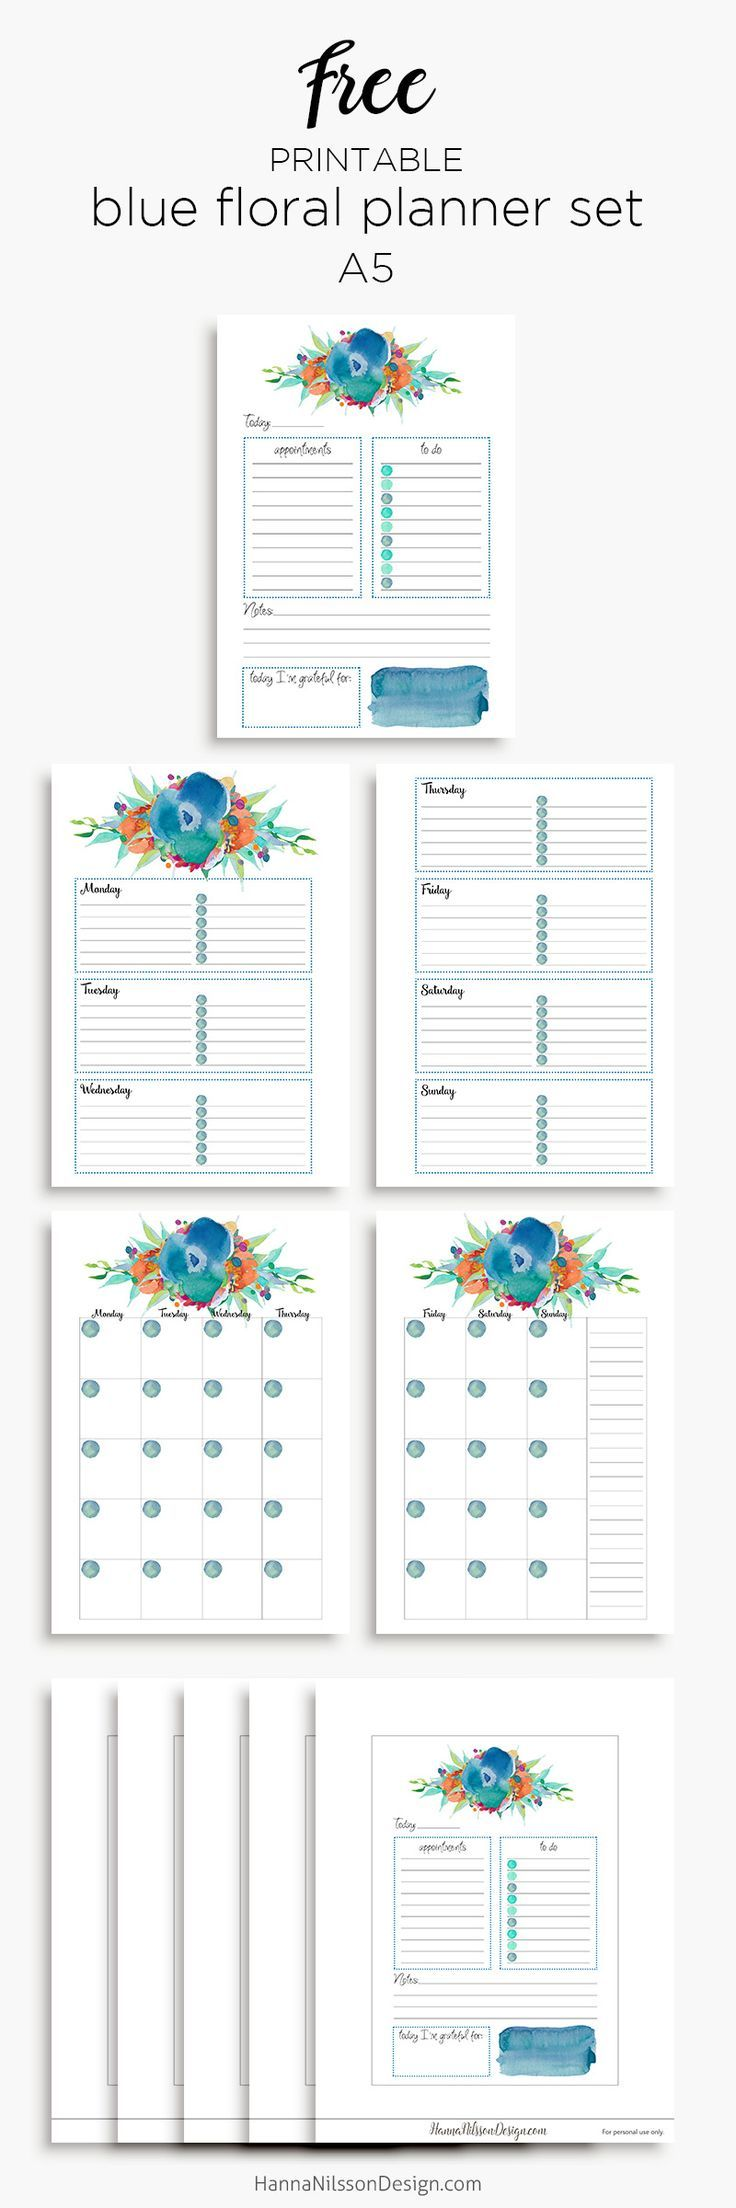 Free Printable Blue Floral Planner Calendar Inserts  A And